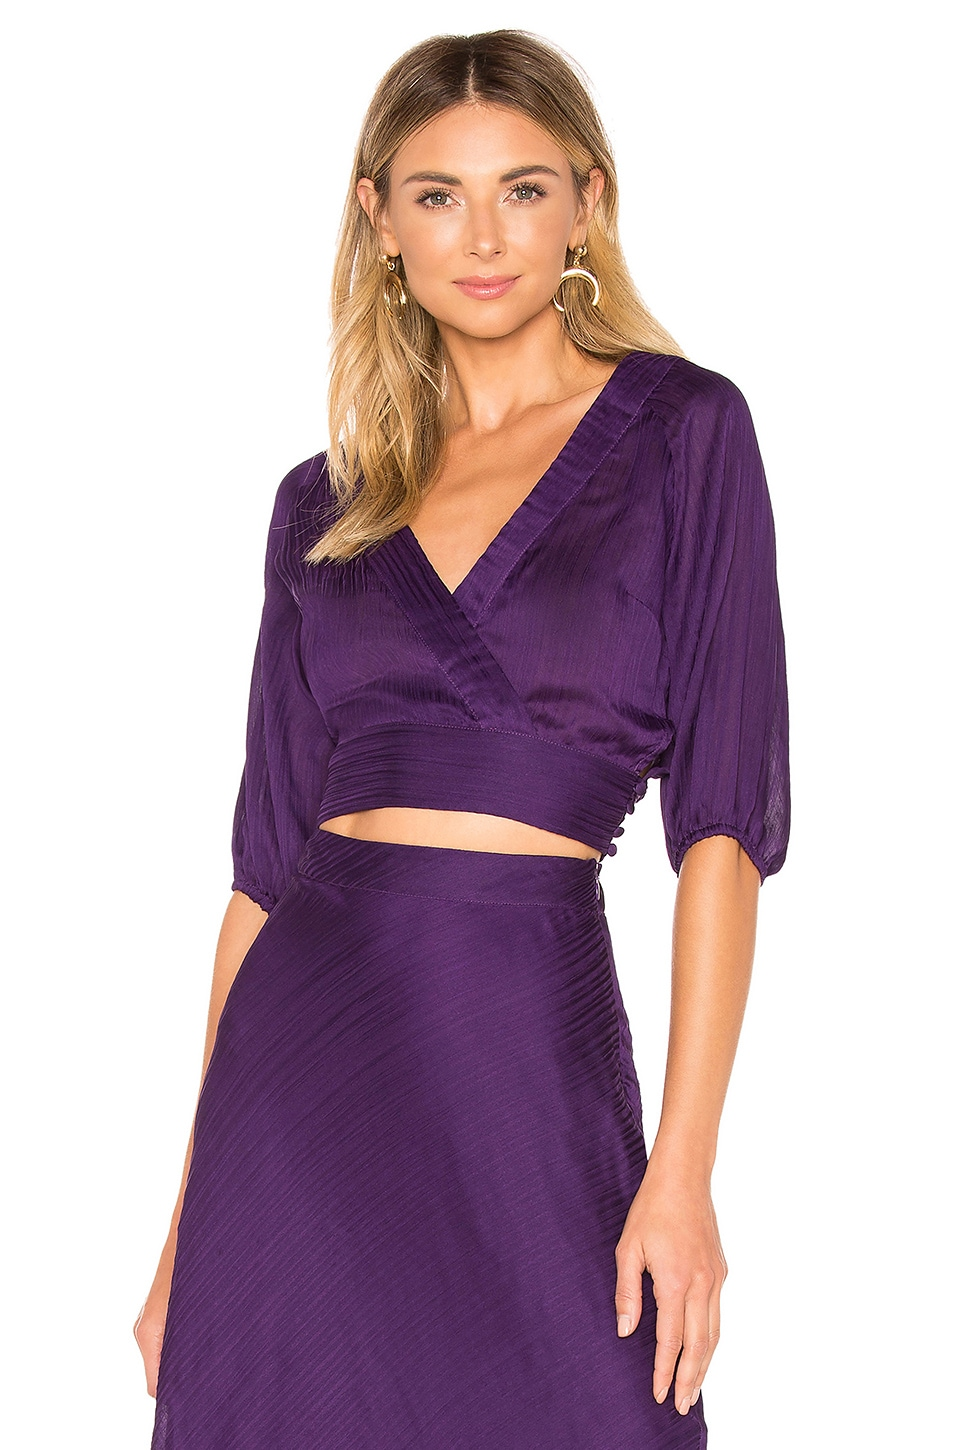 House of Harlow 1960 x REVOLVE Valeria Top in Rich Purple